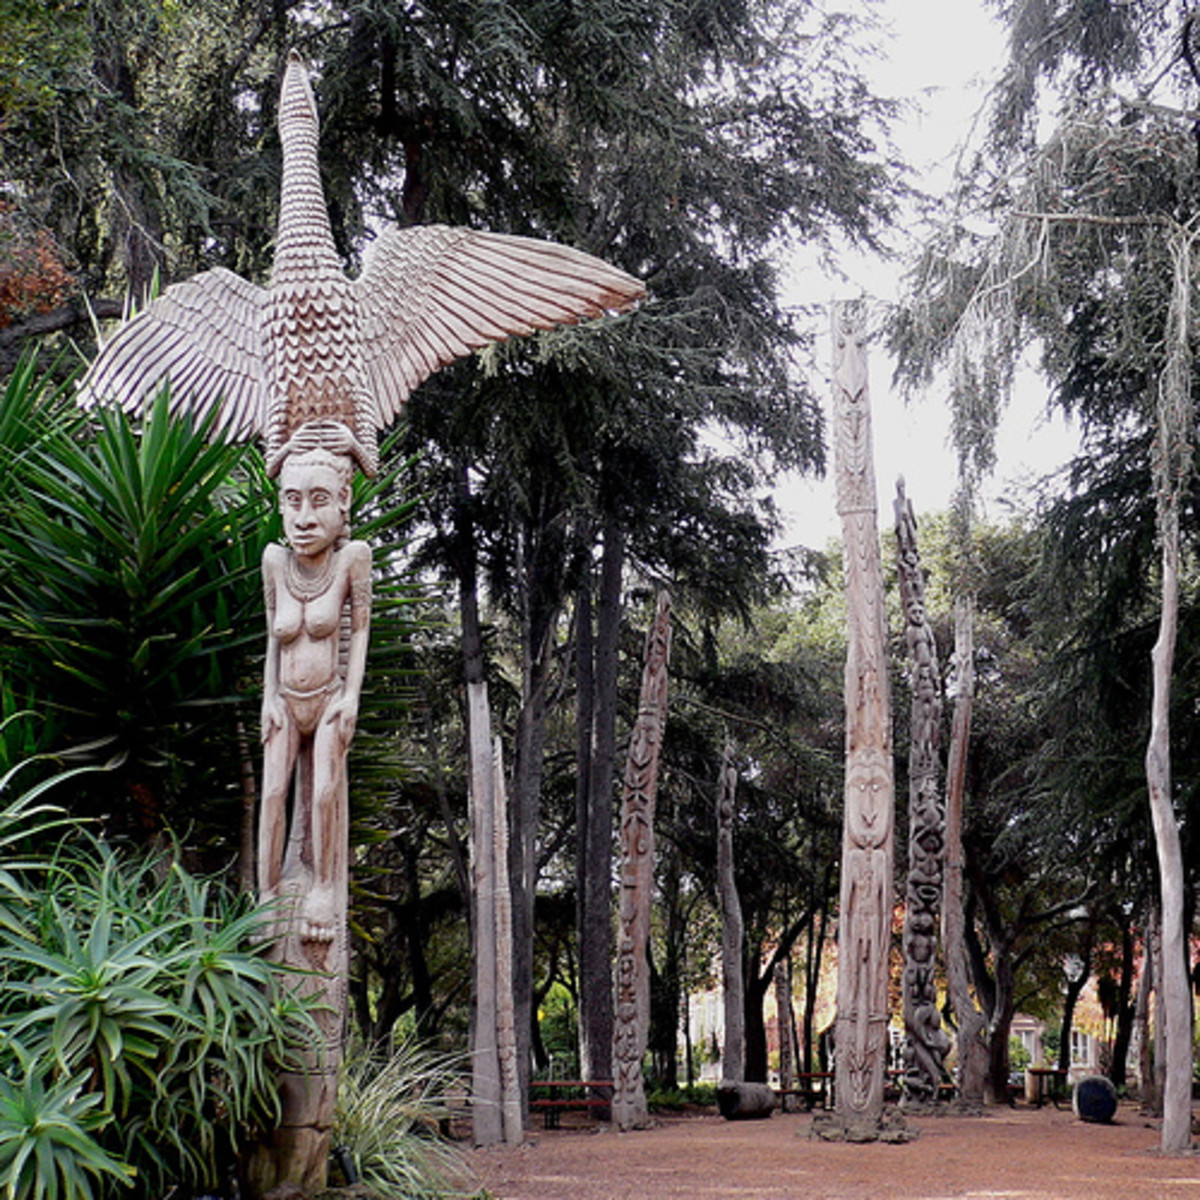 Traditional Papua New Guinean poles carved at Stanford University.